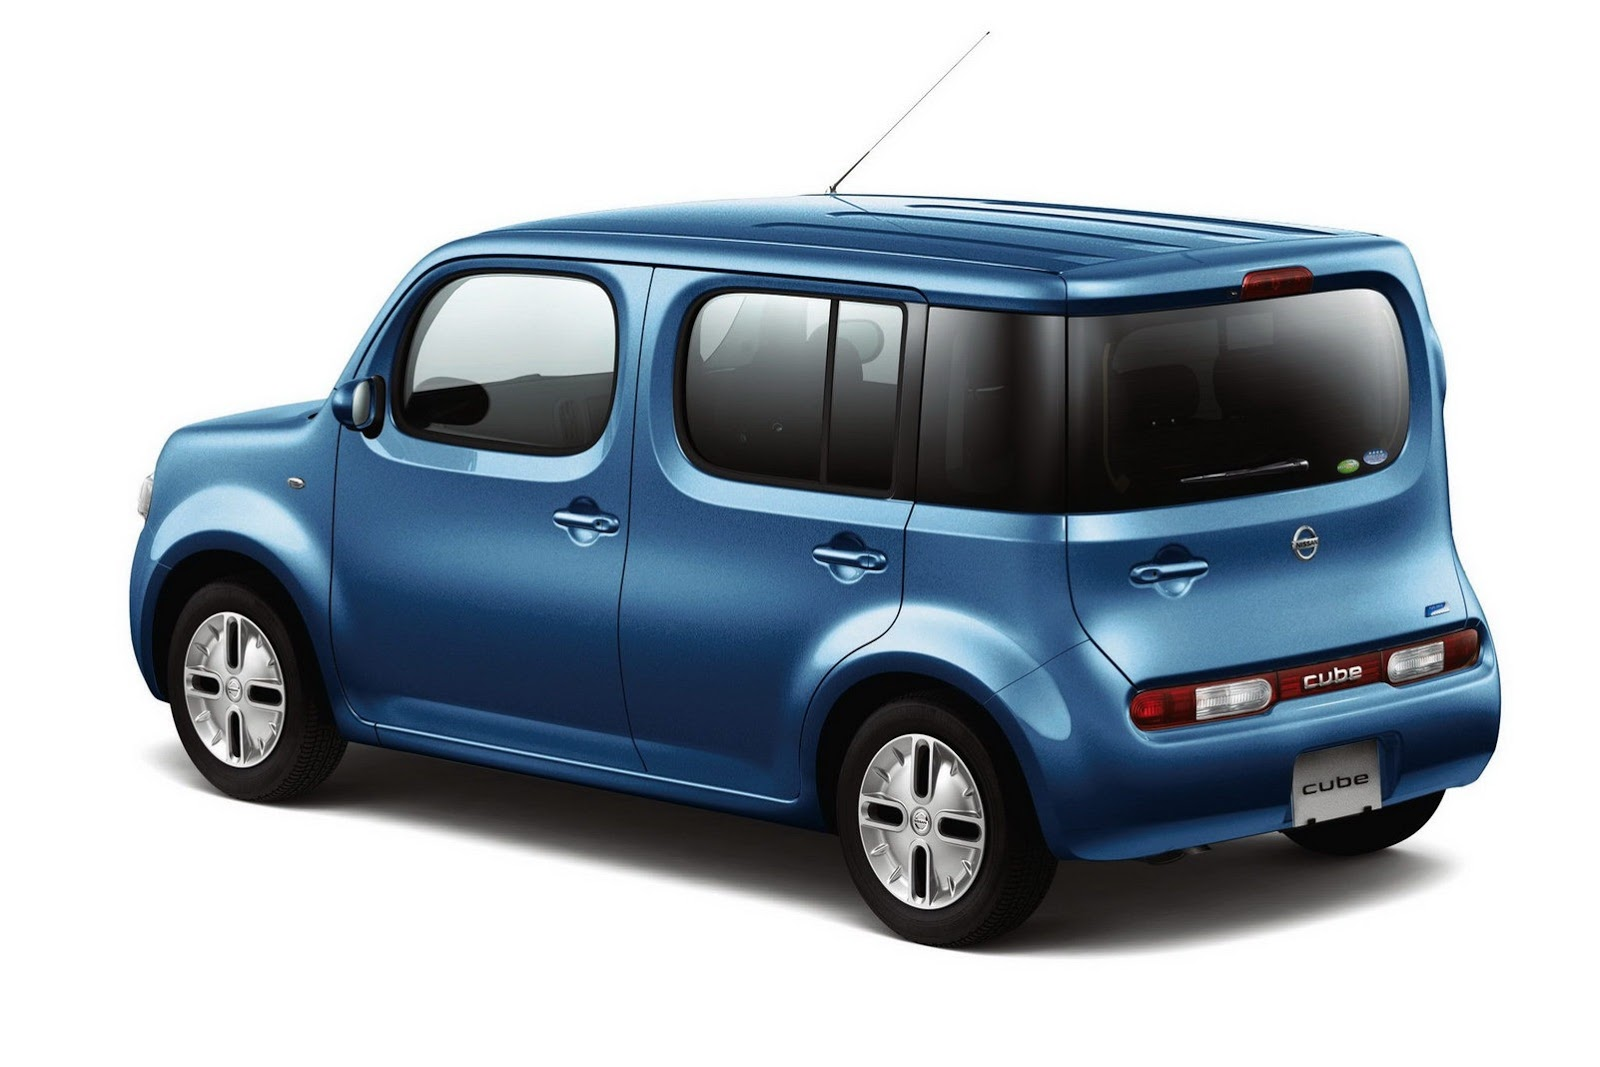 2013 nissan cube iii pictures information and specs. Black Bedroom Furniture Sets. Home Design Ideas